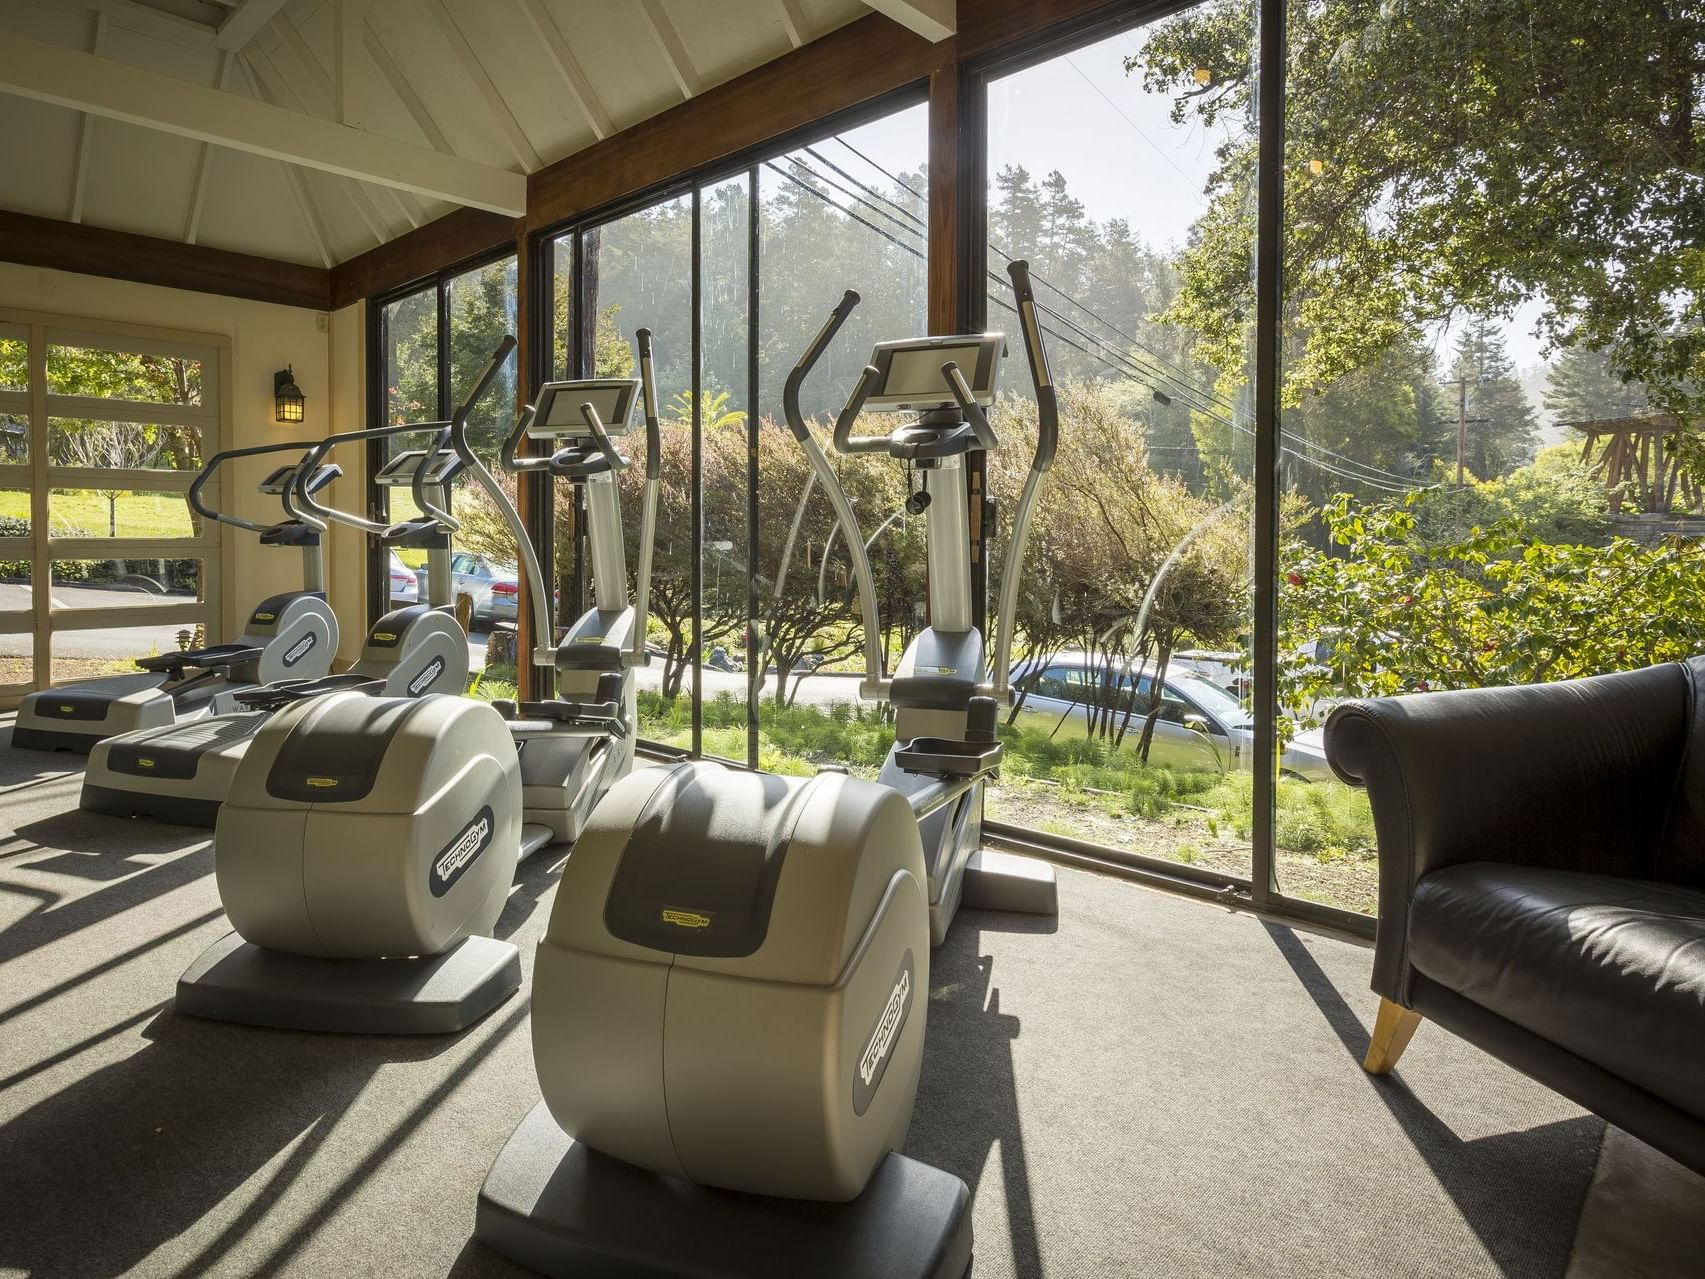 Fitness center filled with treadmills at Heritage House Resort